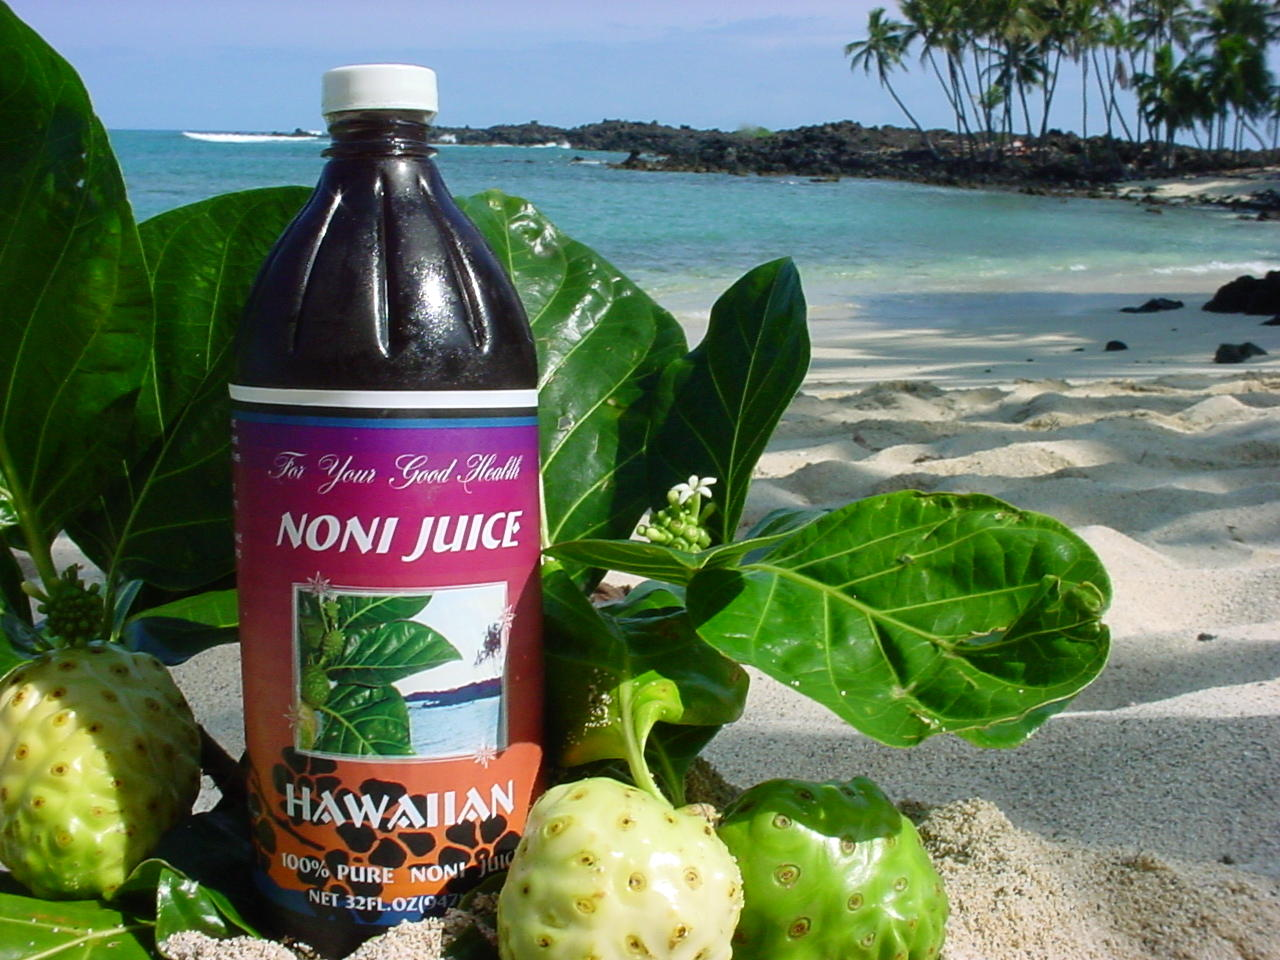 100% Pure Noni Juice Hawaiian at Wholesale Price!